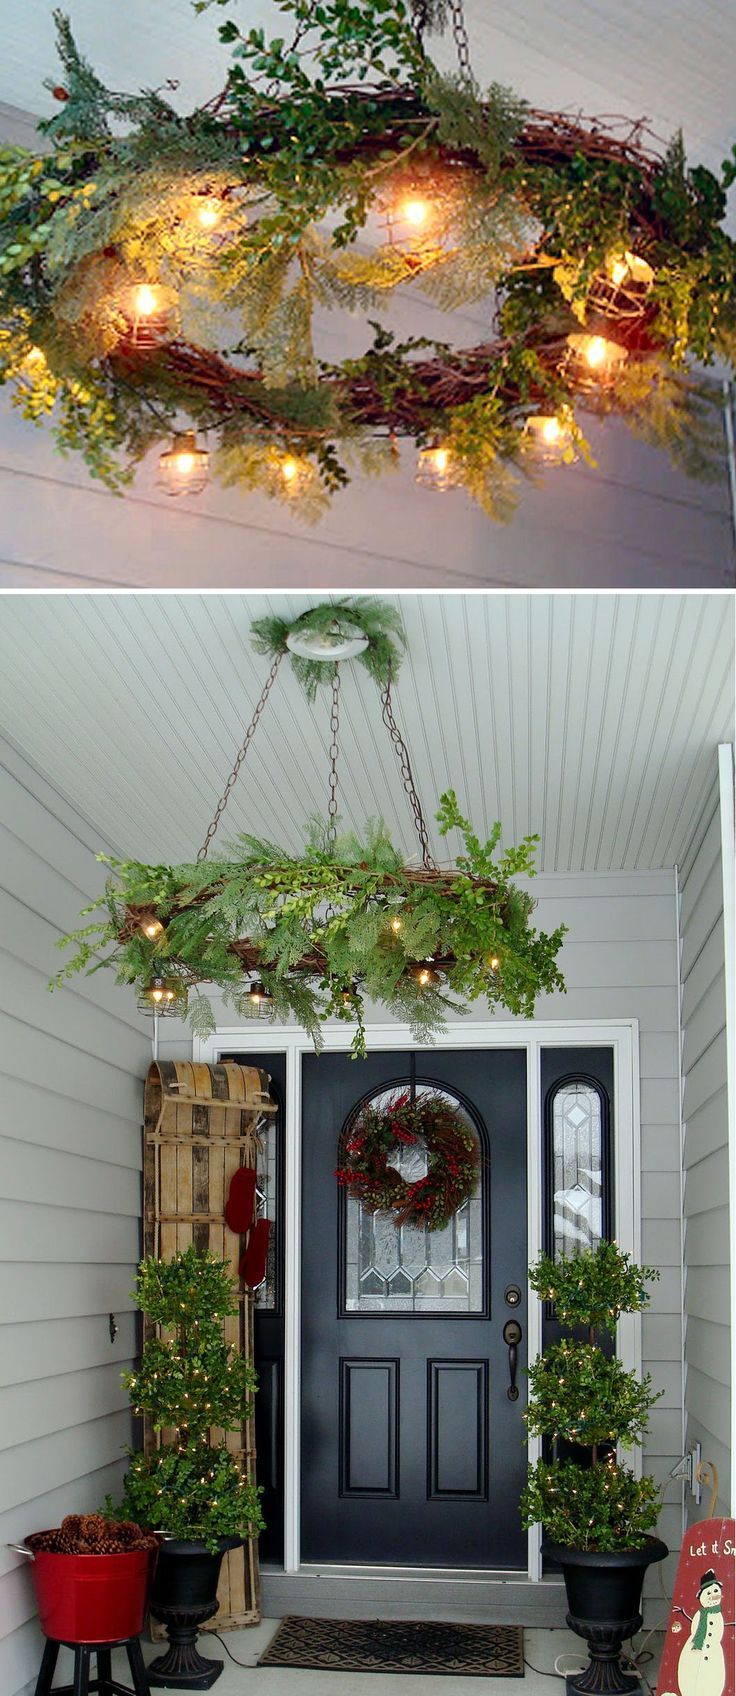 Christmas wreath hung in place of your porch light. What a beautiful addition to your Christmas decorations! I'm thinking dining room also. #christmas #wreaths #decorations #lighting